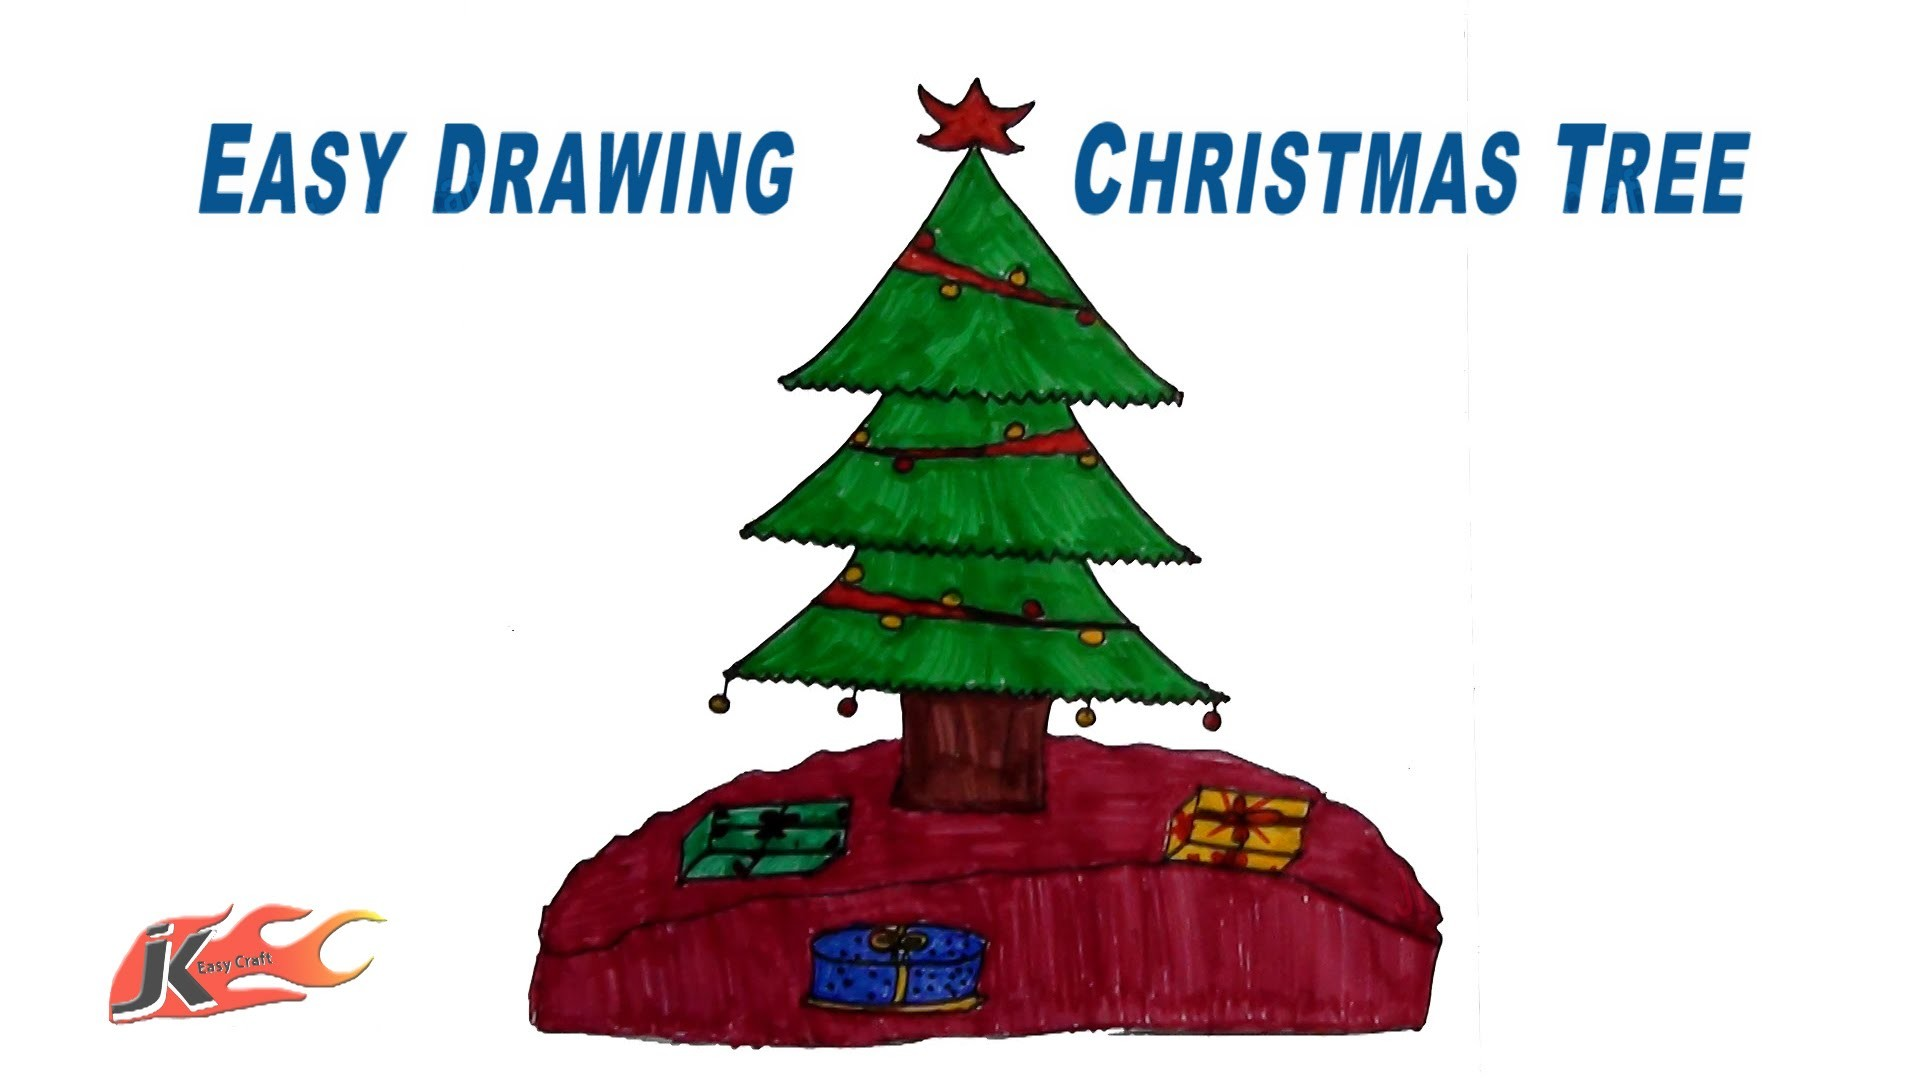 How to Draw a Christmas Tree | Easy School Project for Kids | JK Easy Craft 096